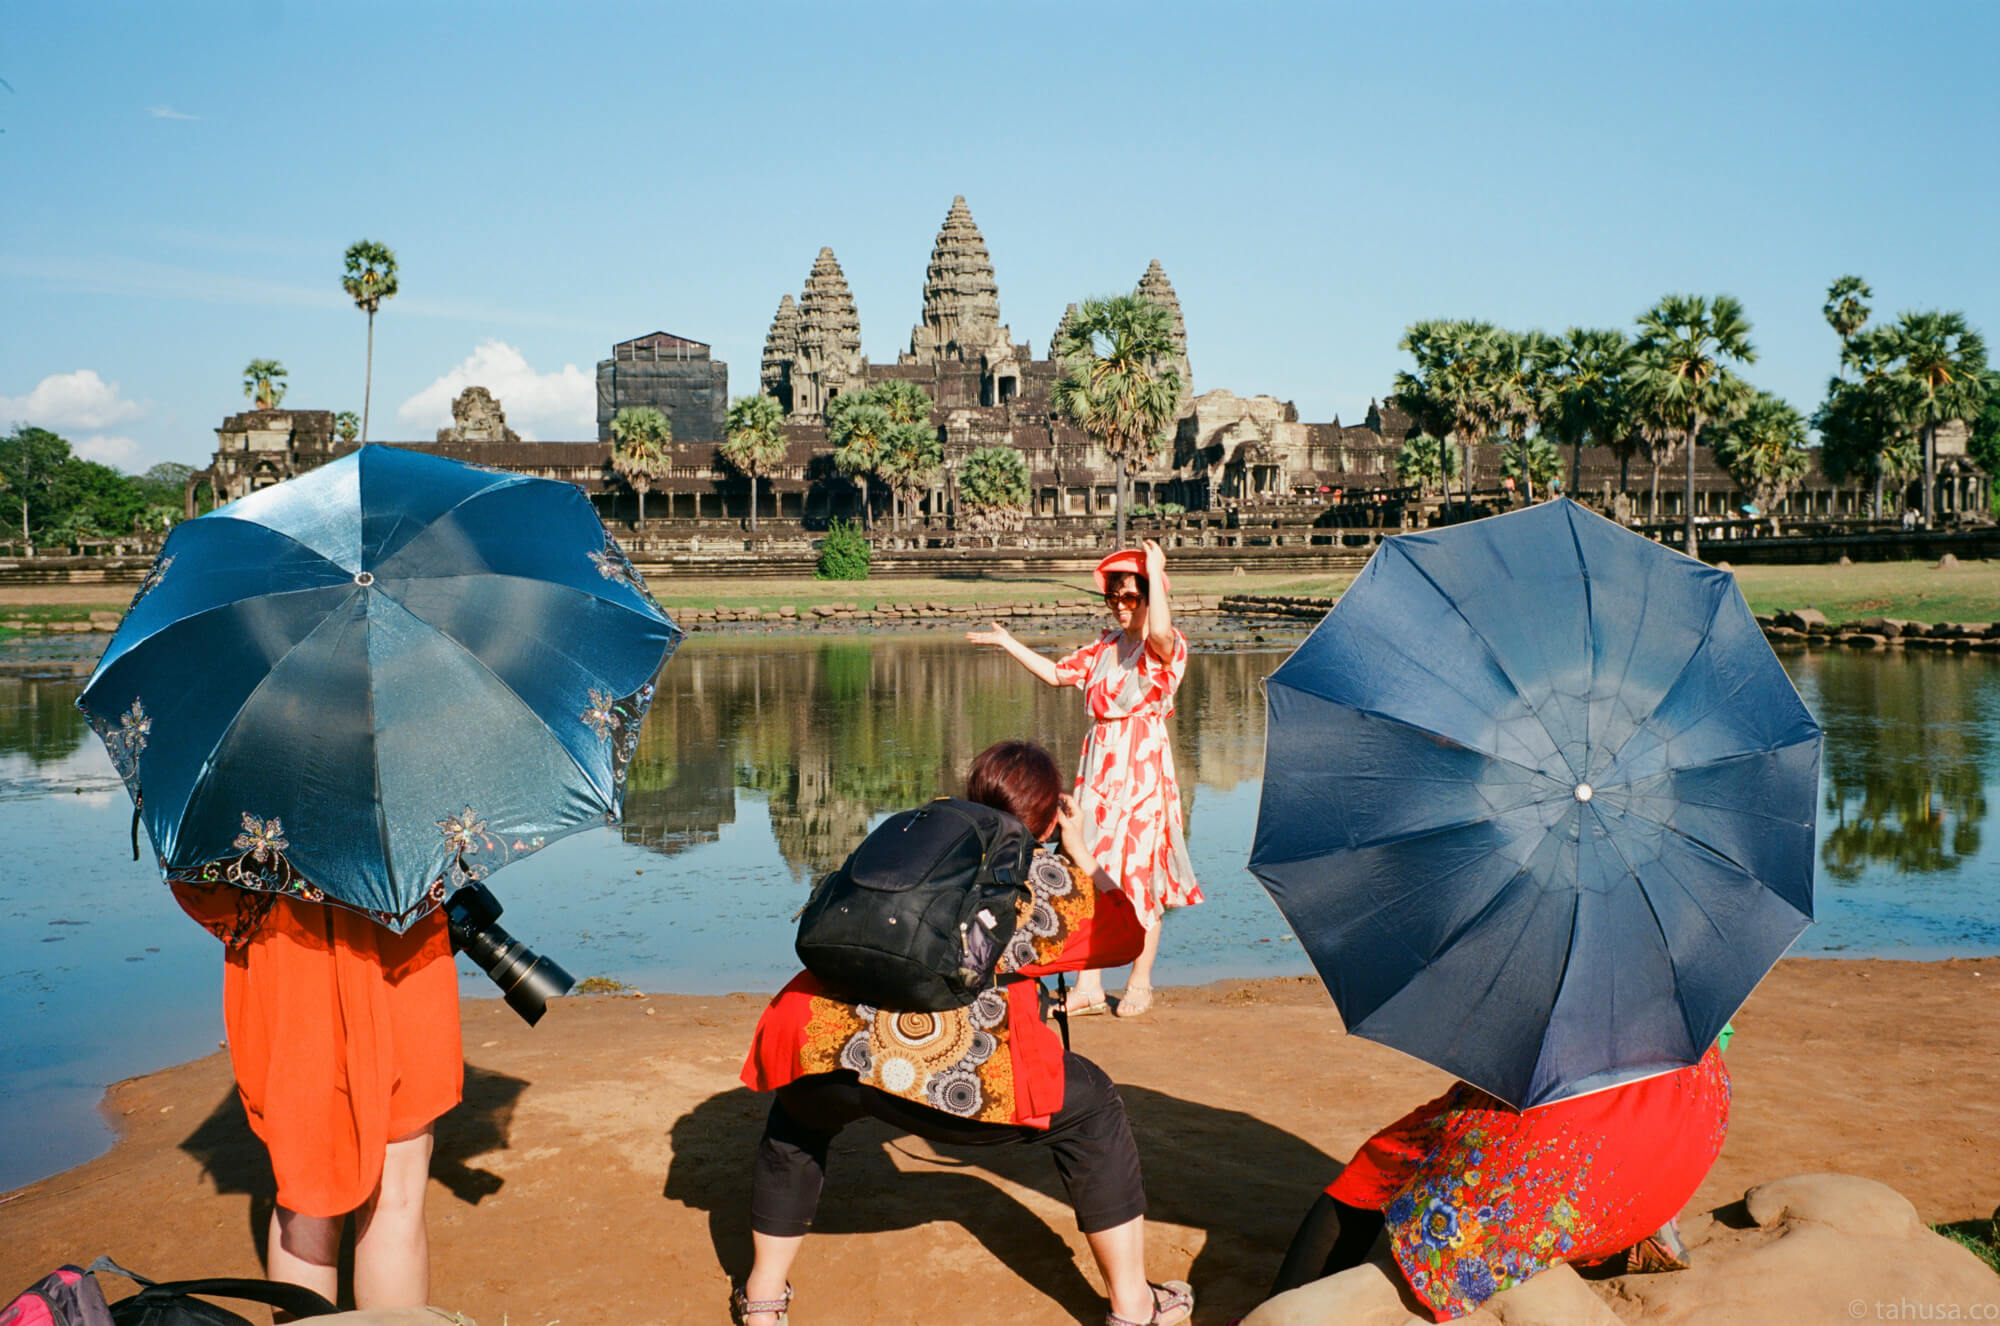 Chinese-women-posing-with-umbrella-Angkor-Siem-Reap-Cambodia-travel-photography-using-ektar-100-kodak-and-summilux-35mm-f1.4-pre-asph-infinity-lock-leica-film